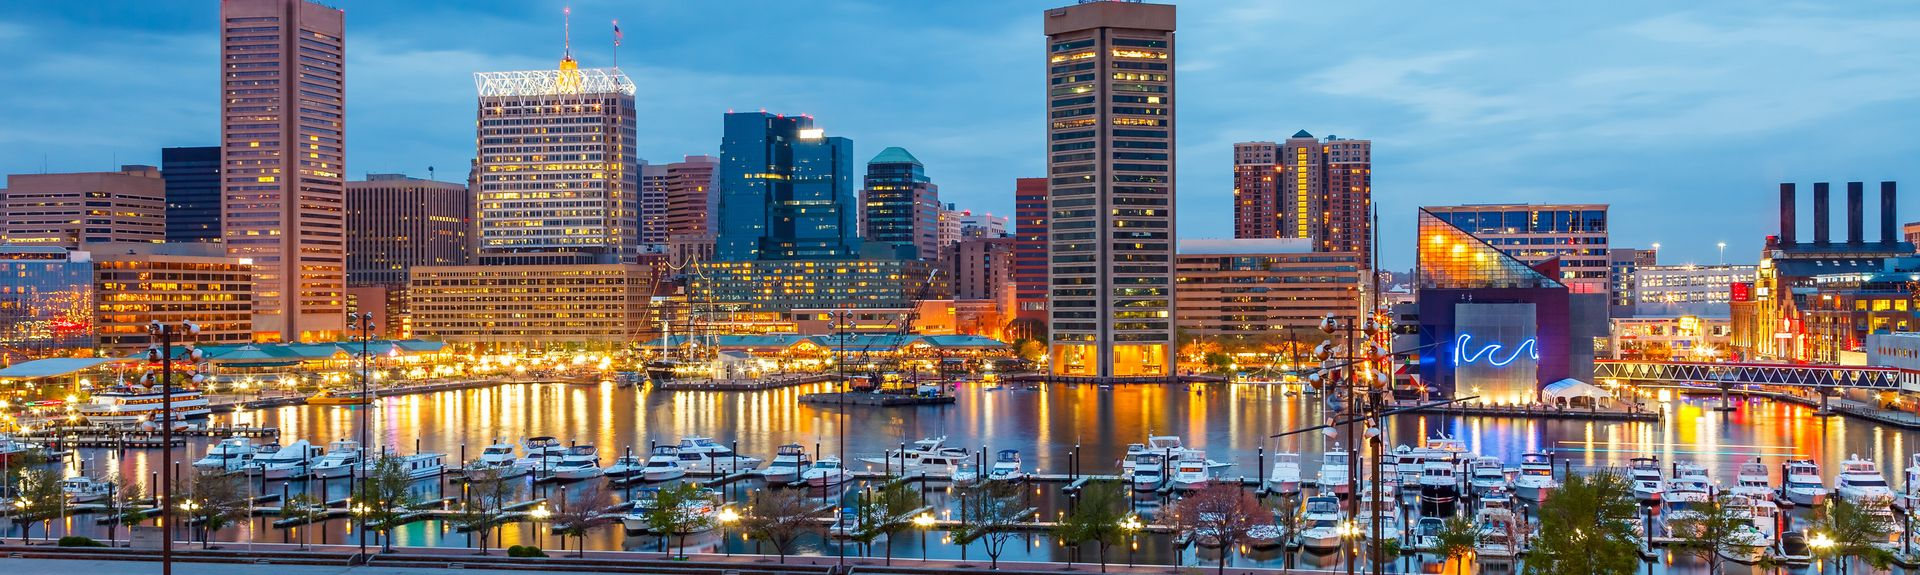 Baltimore, Maryland, Estados Unidos